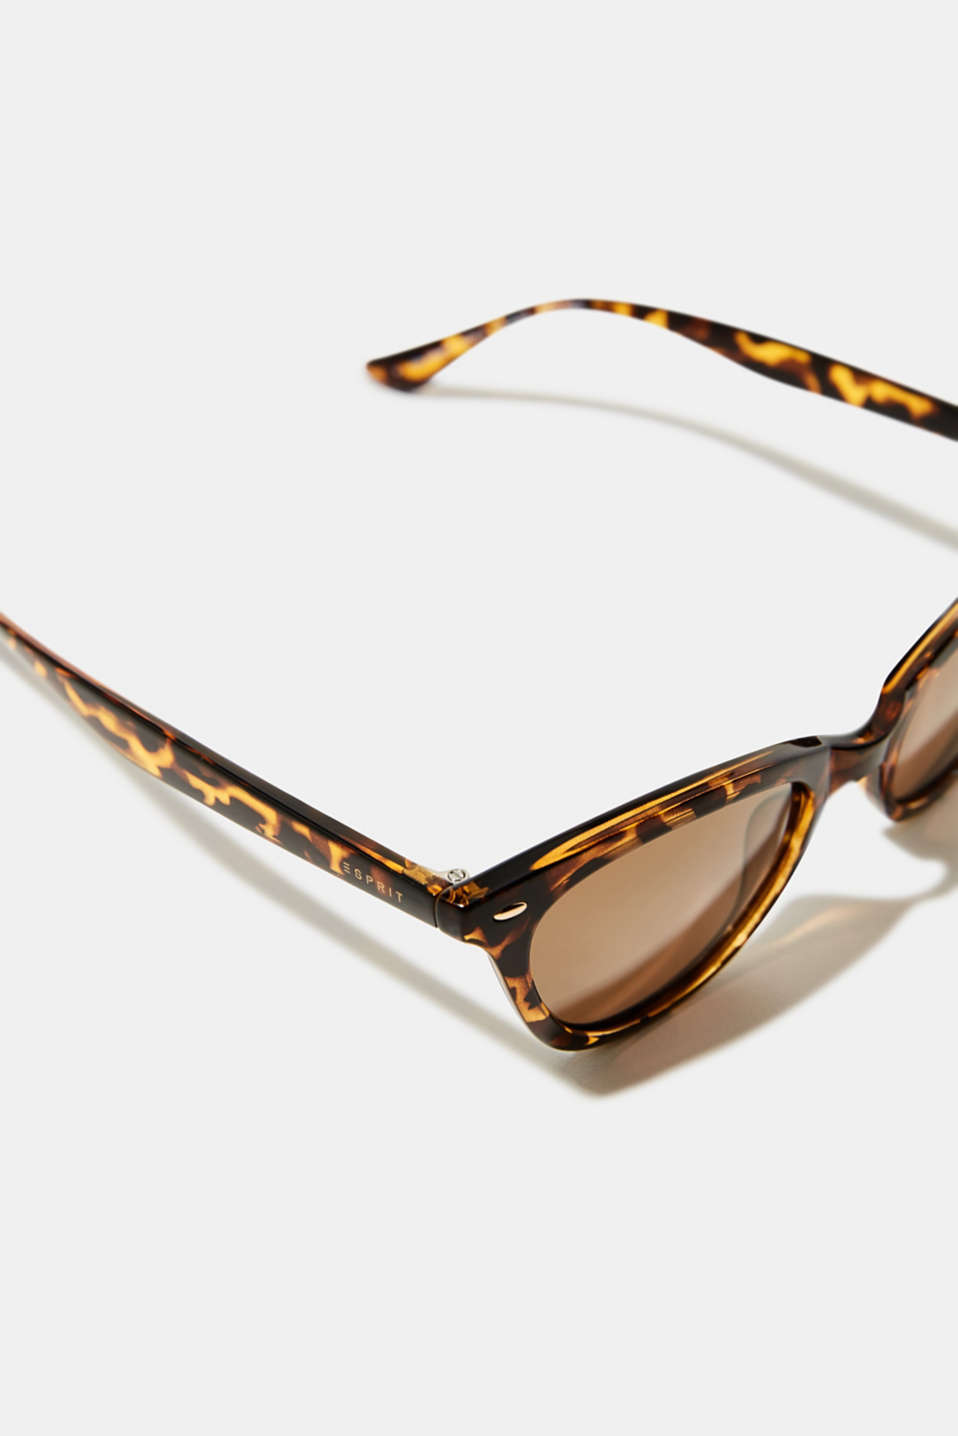 Sunglasses in a narrow cat-eye design, LCHAVANNA, detail image number 1